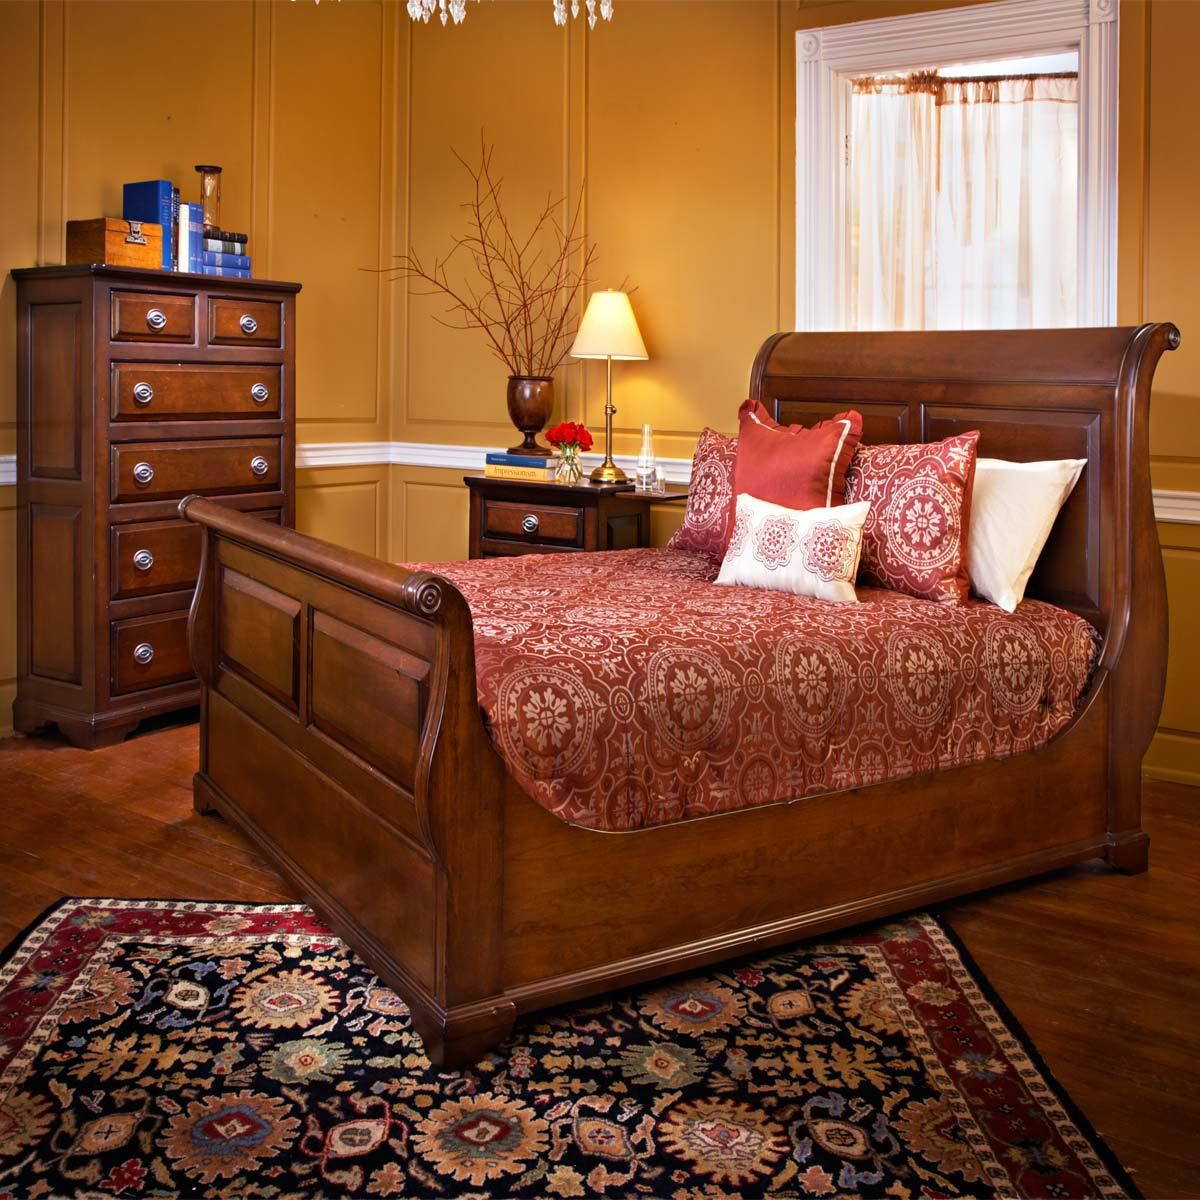 The Coventry Bedroom Set By Keystone Collections Is Crafted Using The  Skills Of Artisans In The Local Pennsylvania Community. When You Debate  About Quality, ...